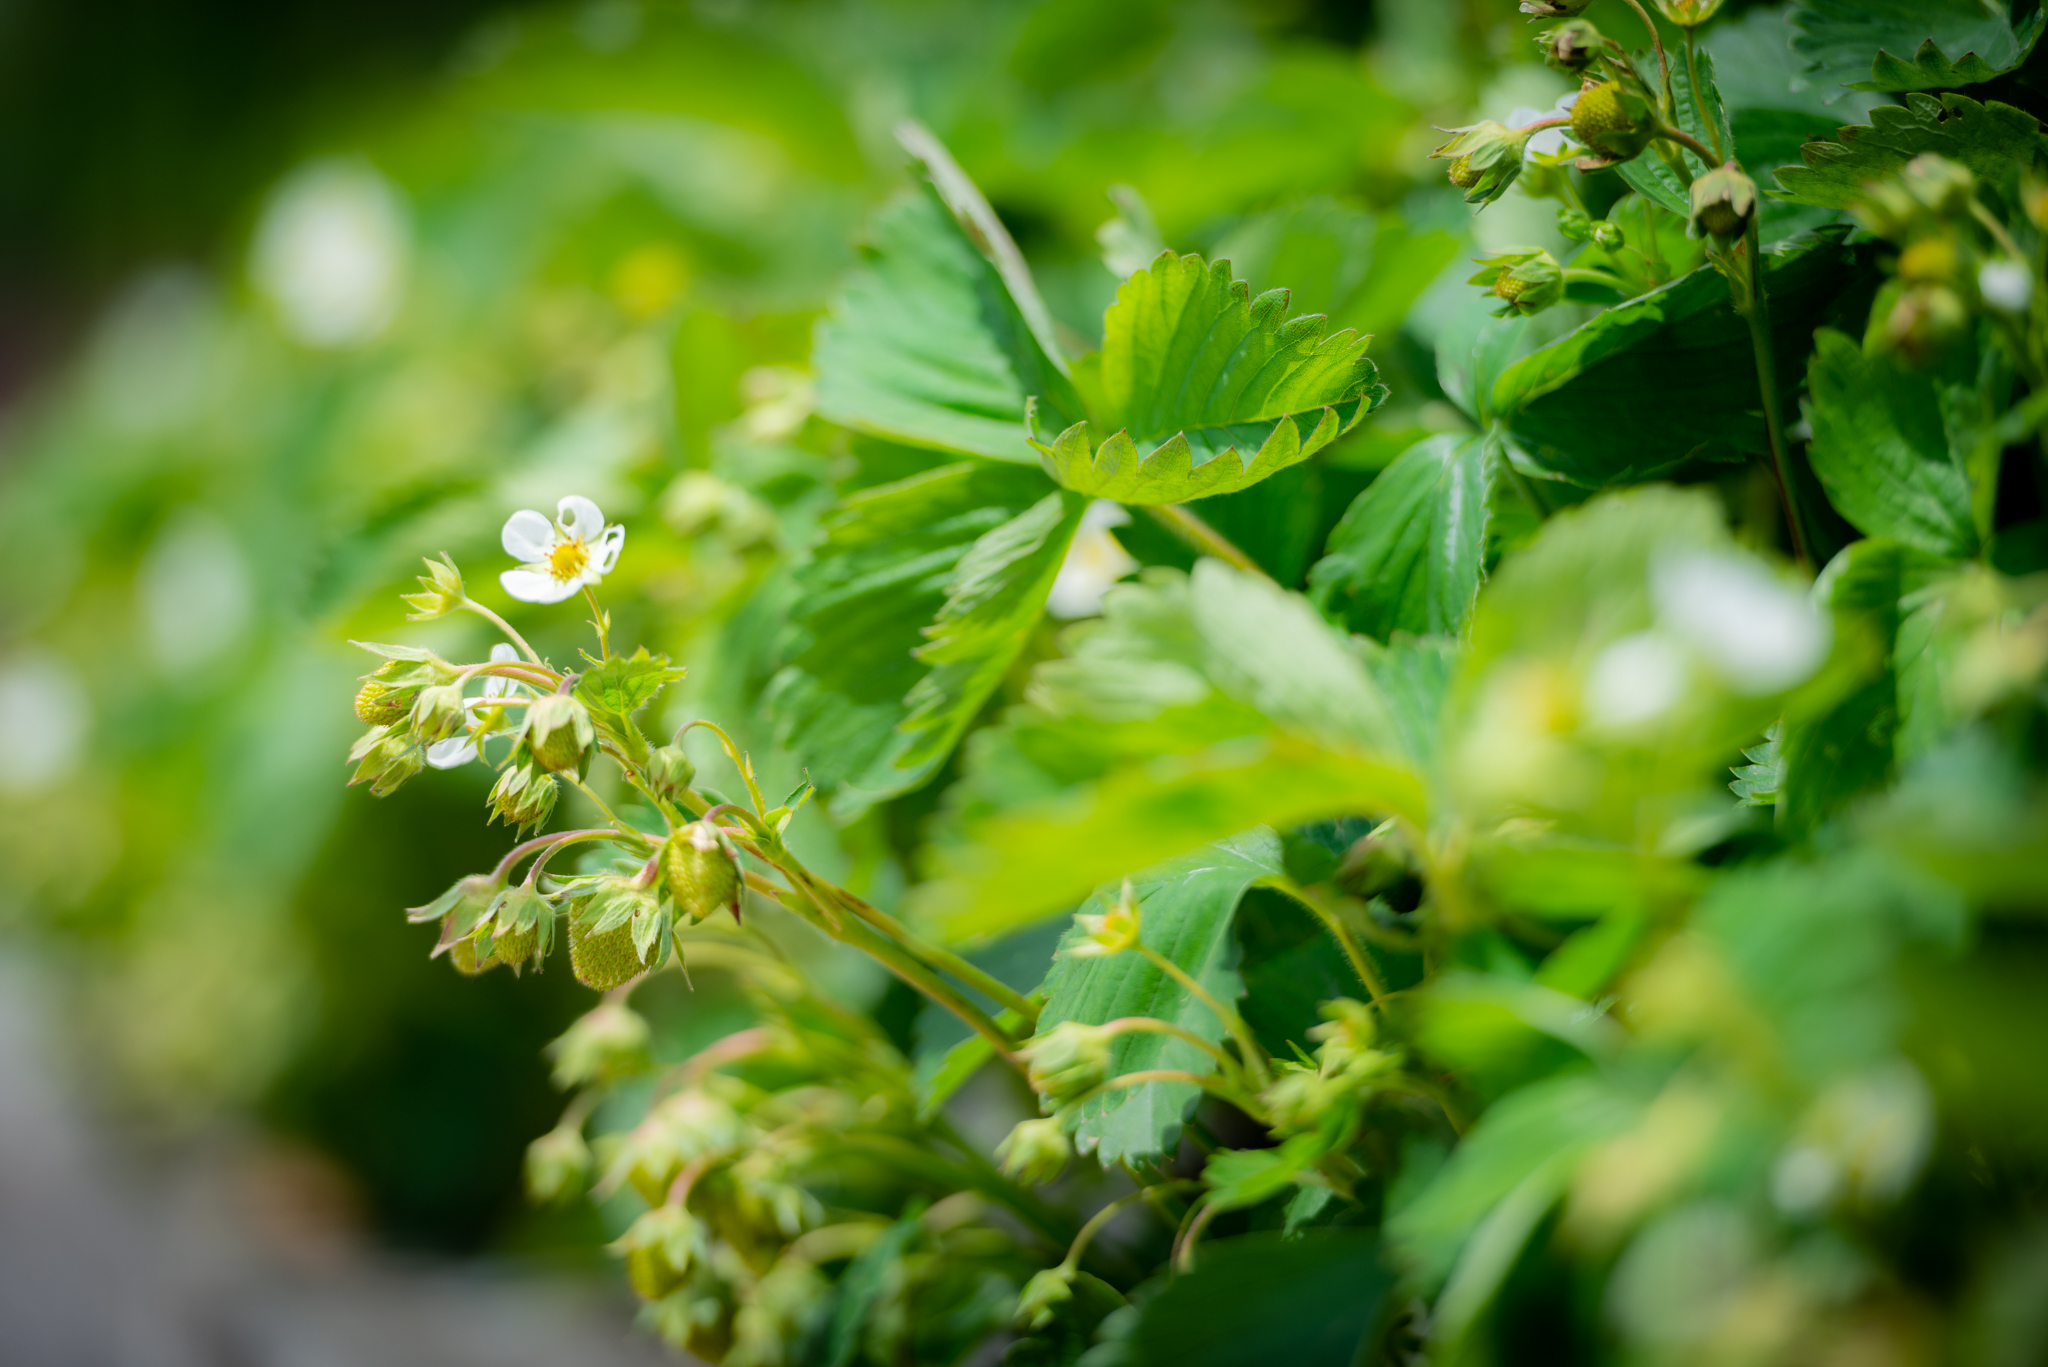 Close of young green growing leaves and